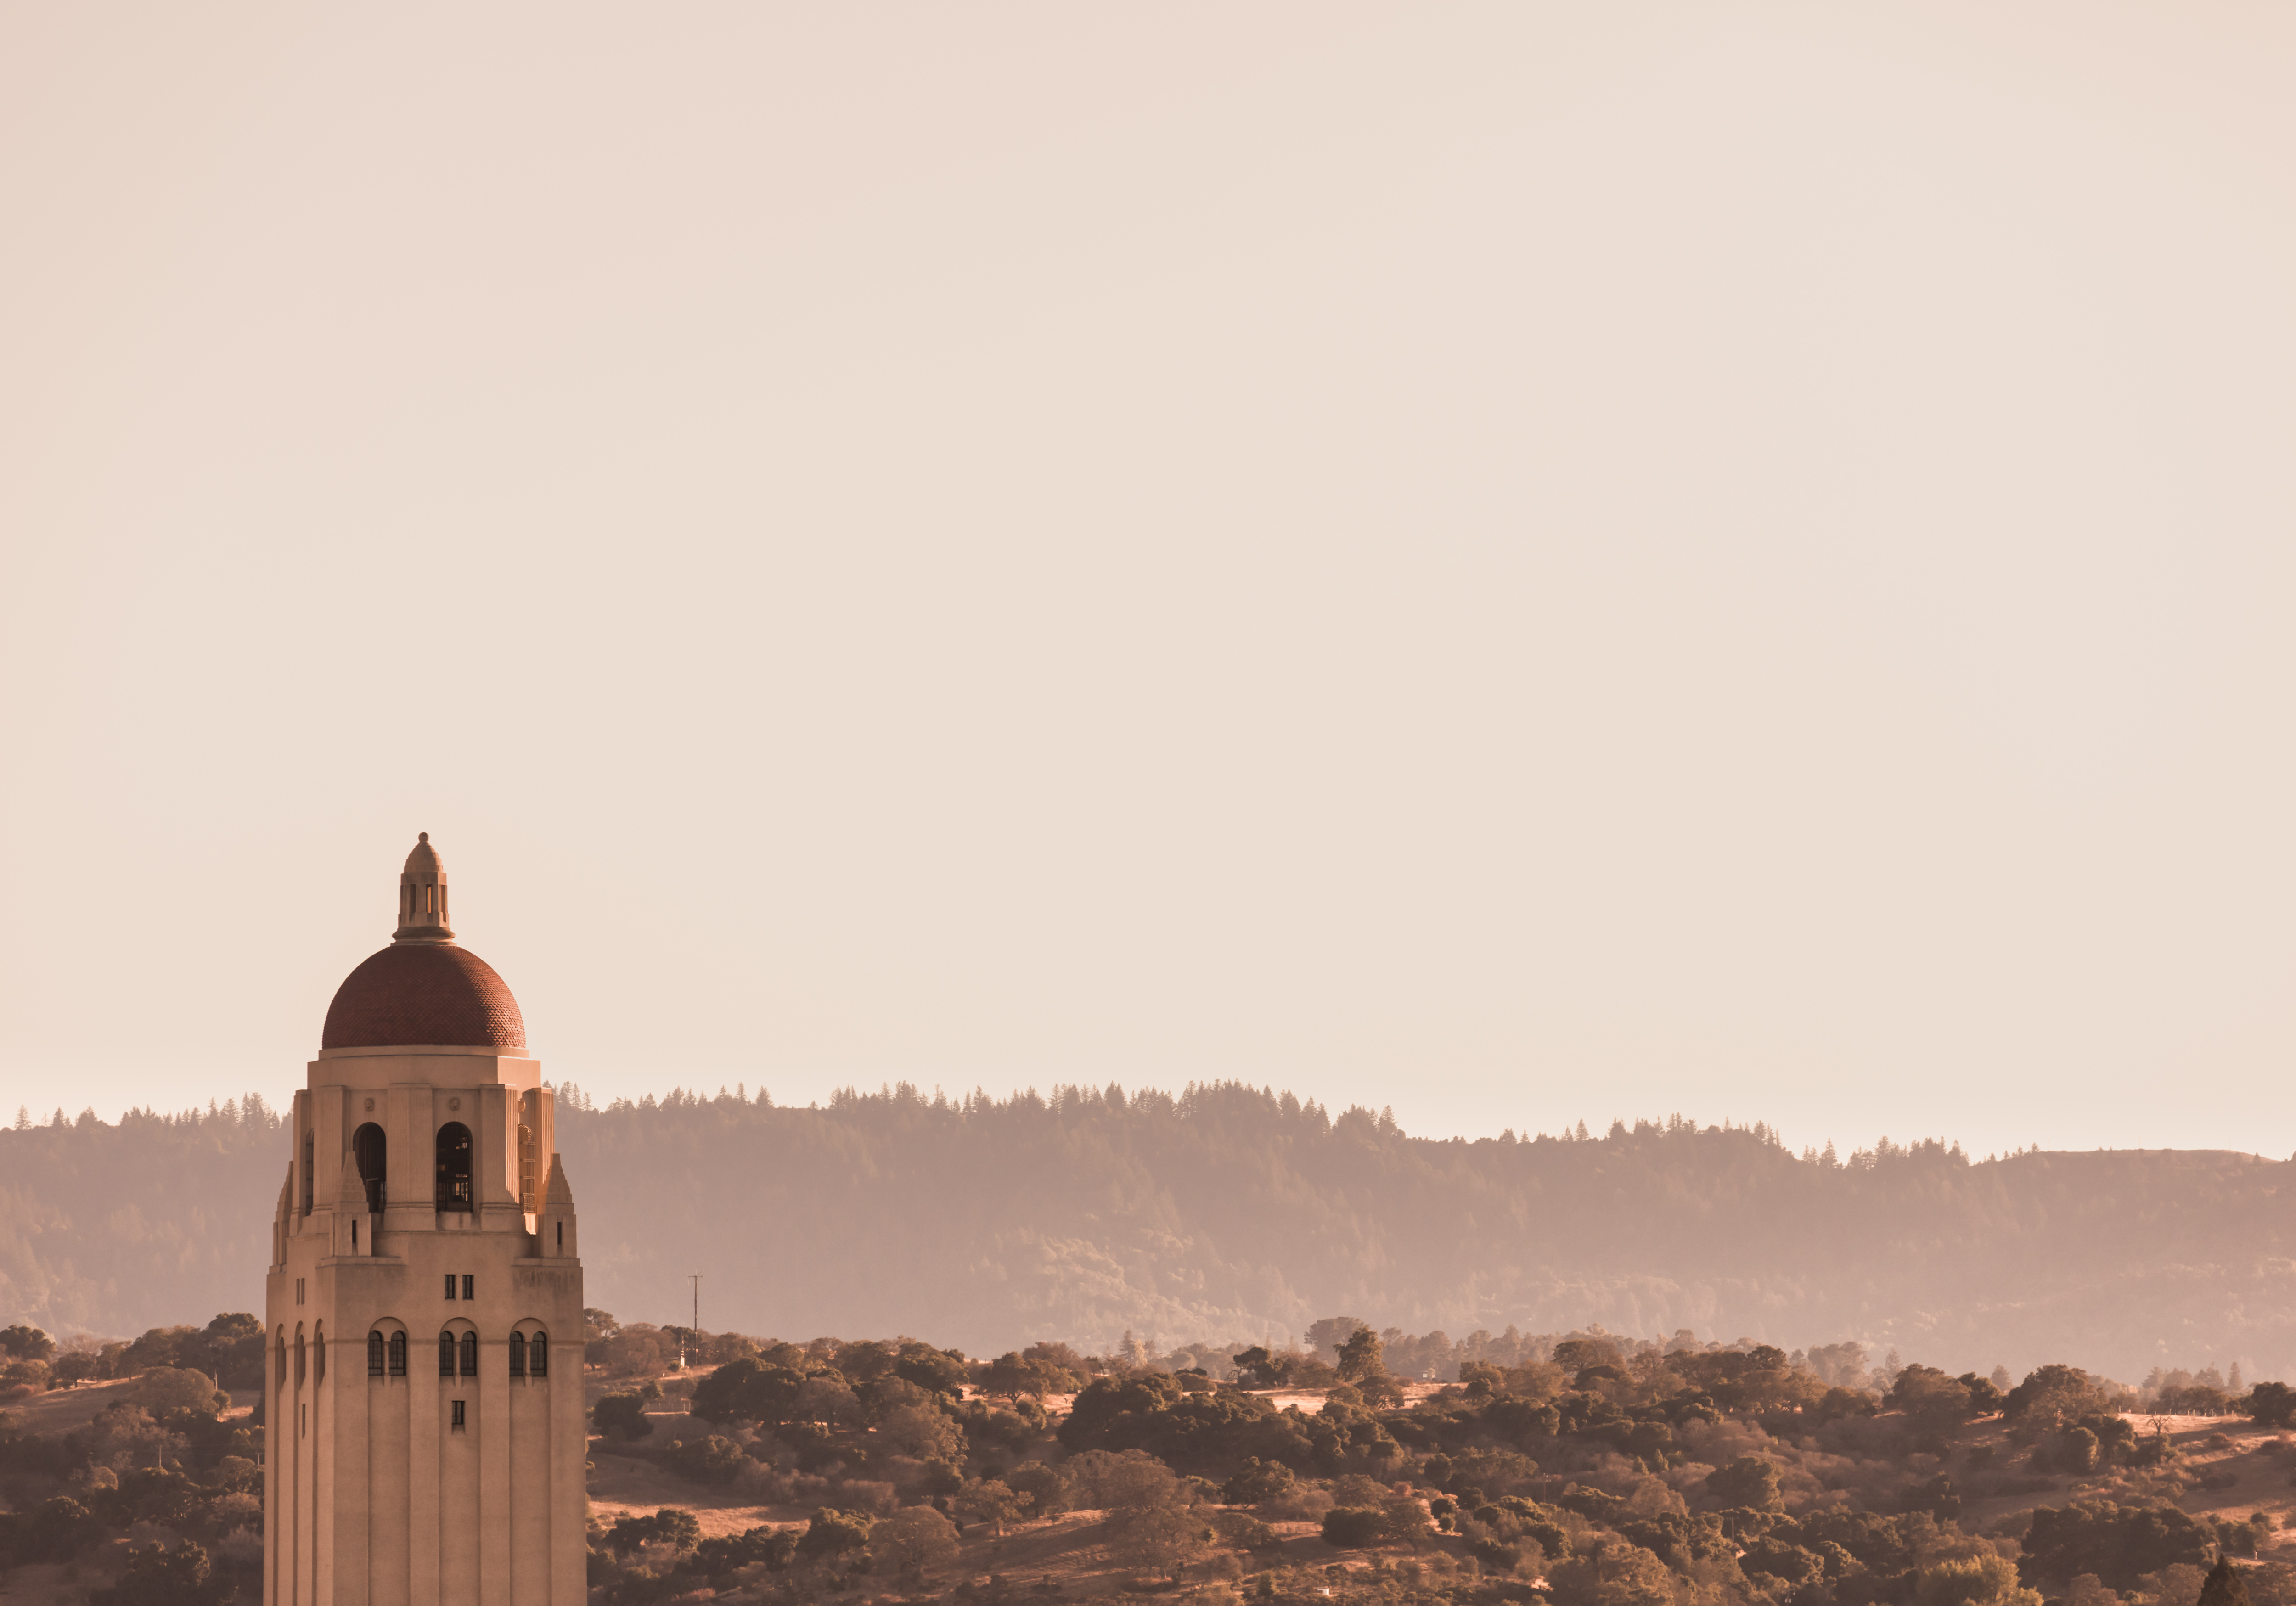 The Hoover Tower of Stanford University is seen with hills behind it.